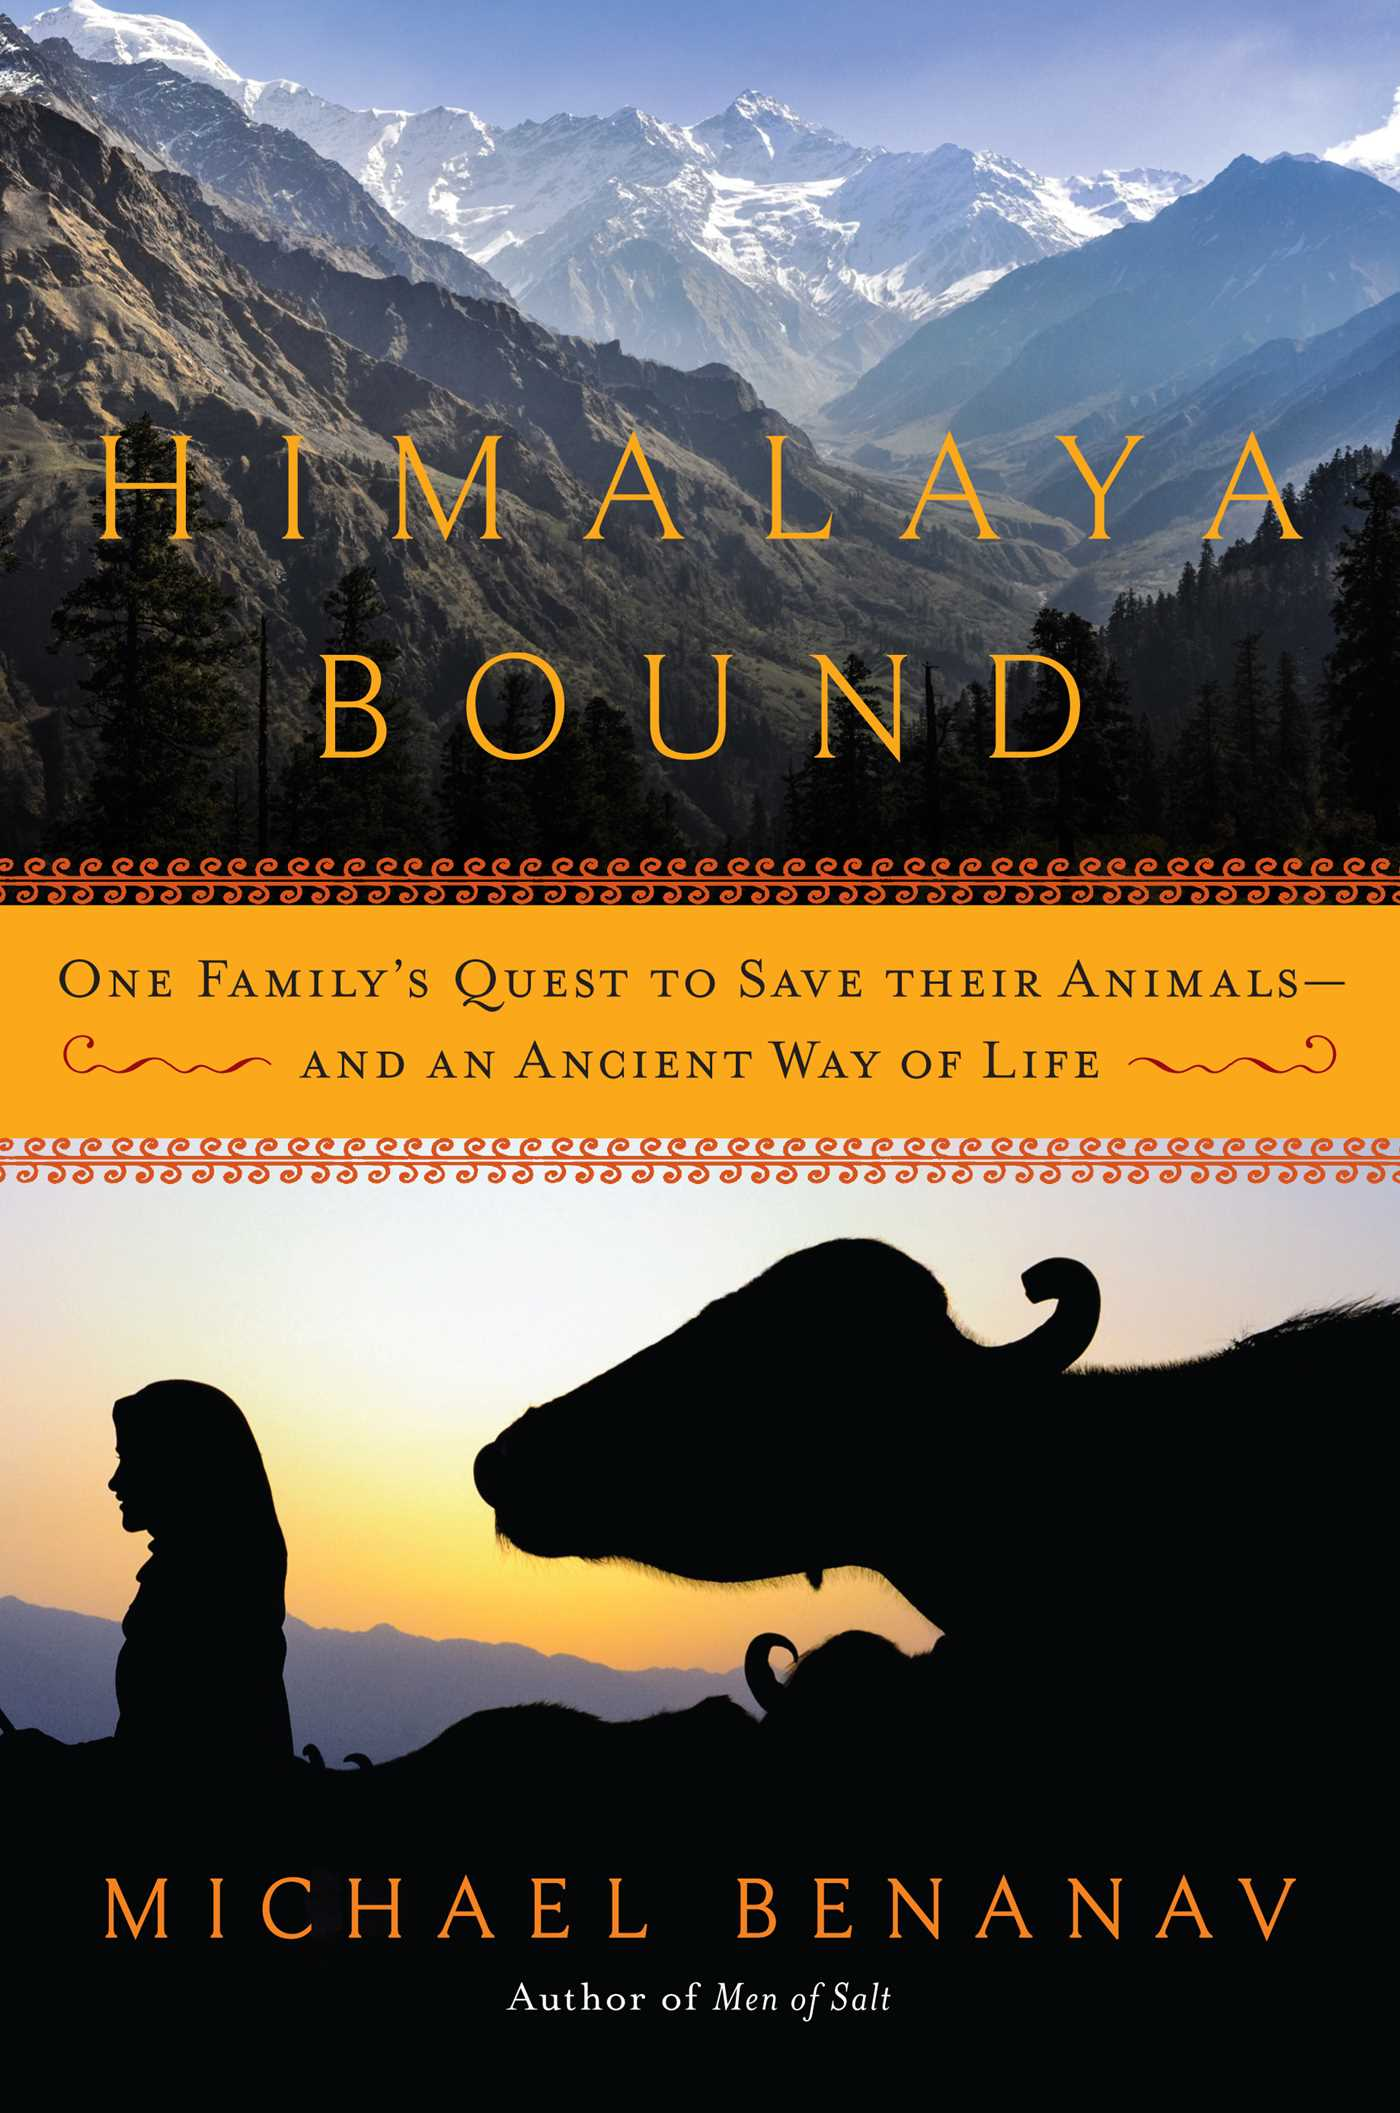 Himalaya Bound : One Family's Quest to Save Their Animals--And an Ancient Way of Life